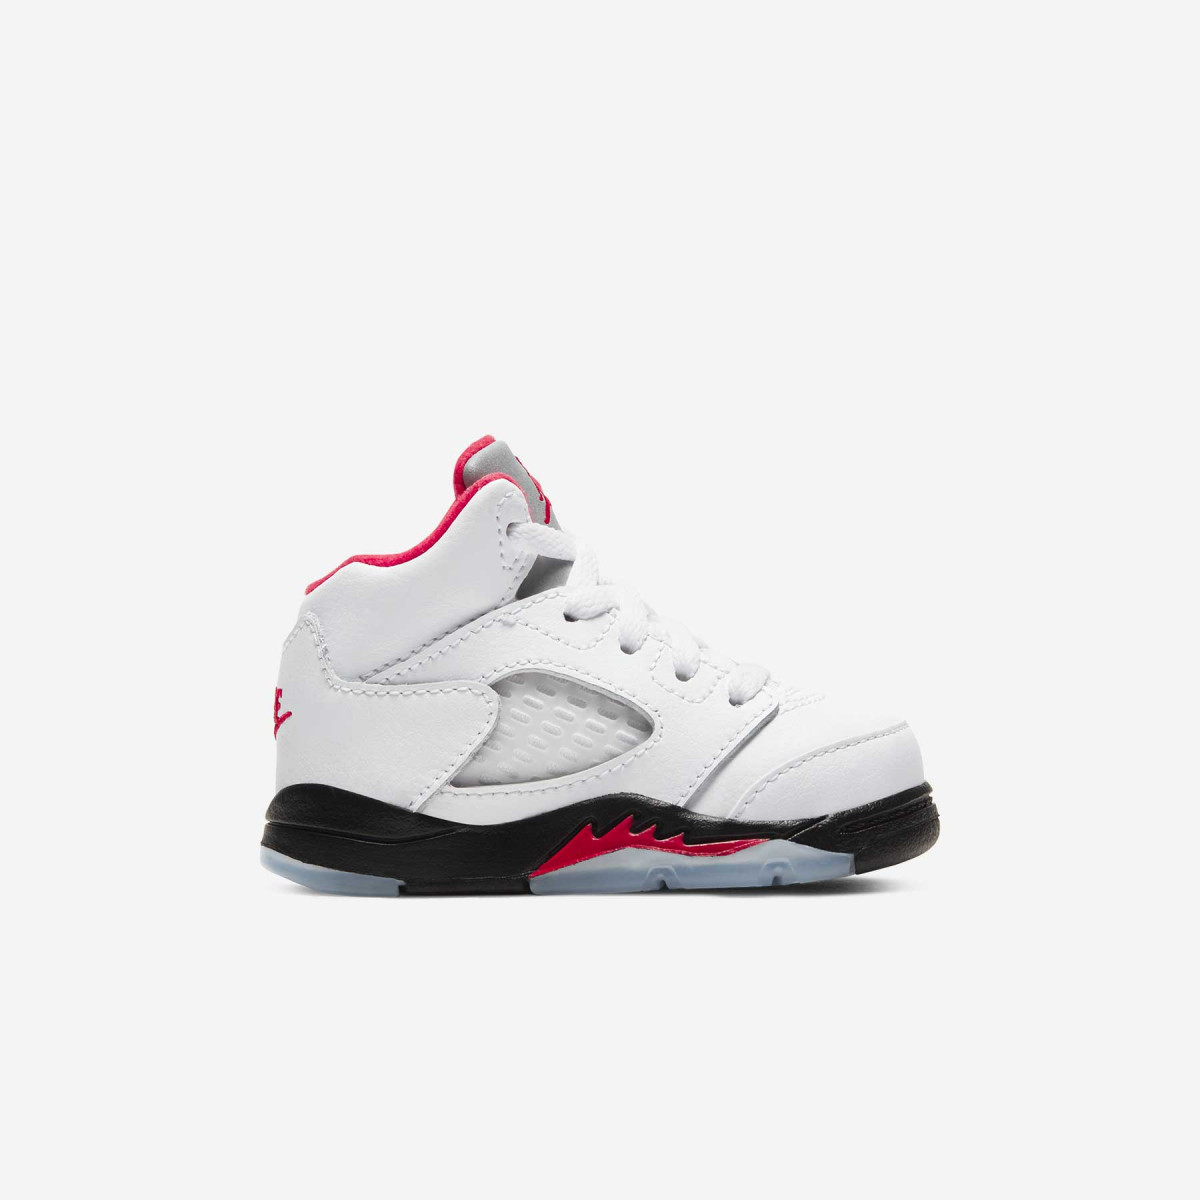 "Air Jordan 5 Retro OG ""Fire Red"" TD"